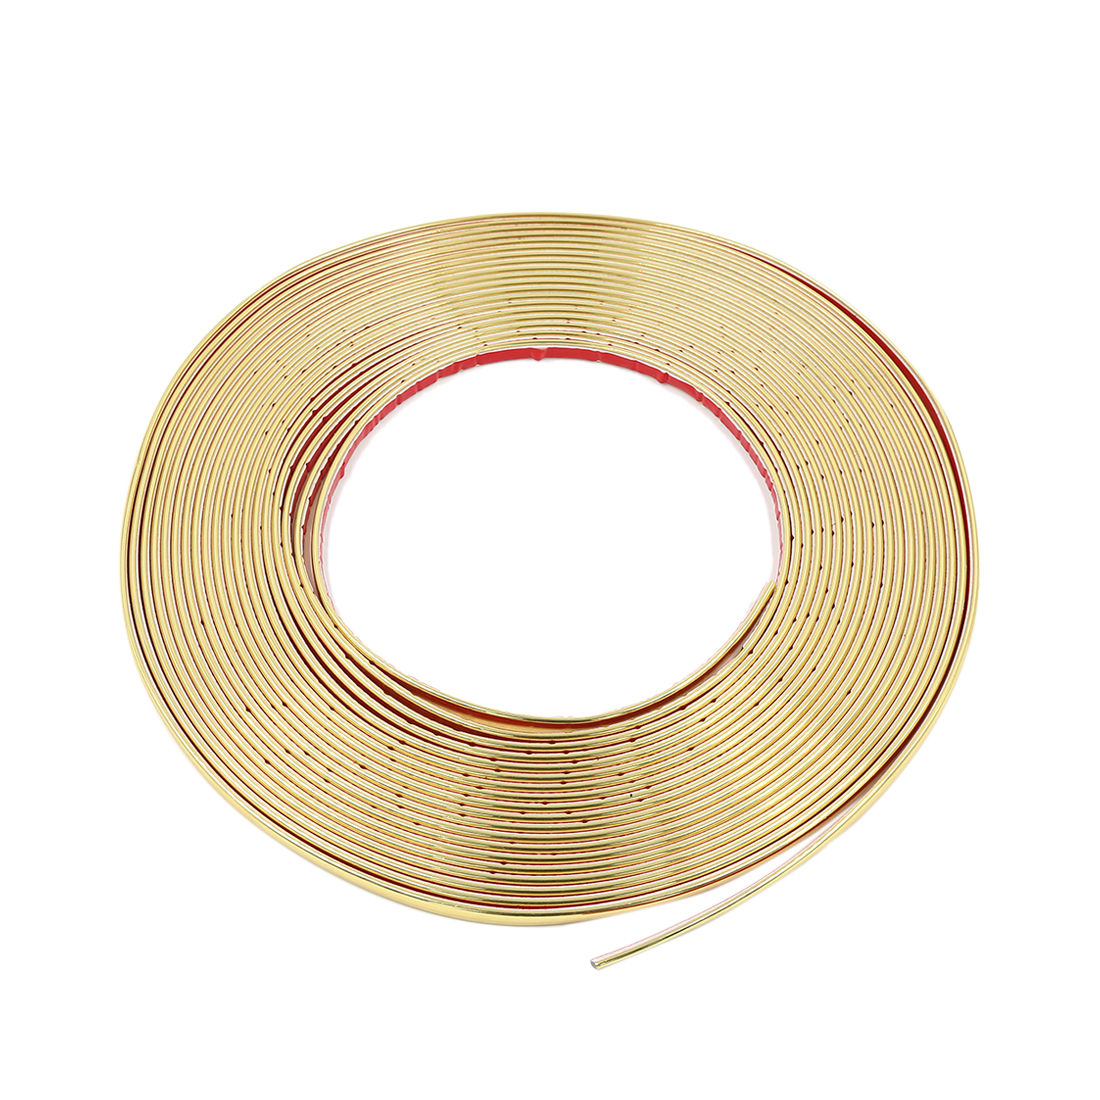 15m x 18mm Gold Tone Car Door Edge Guard Moulding Trim Strip Sticker Protector